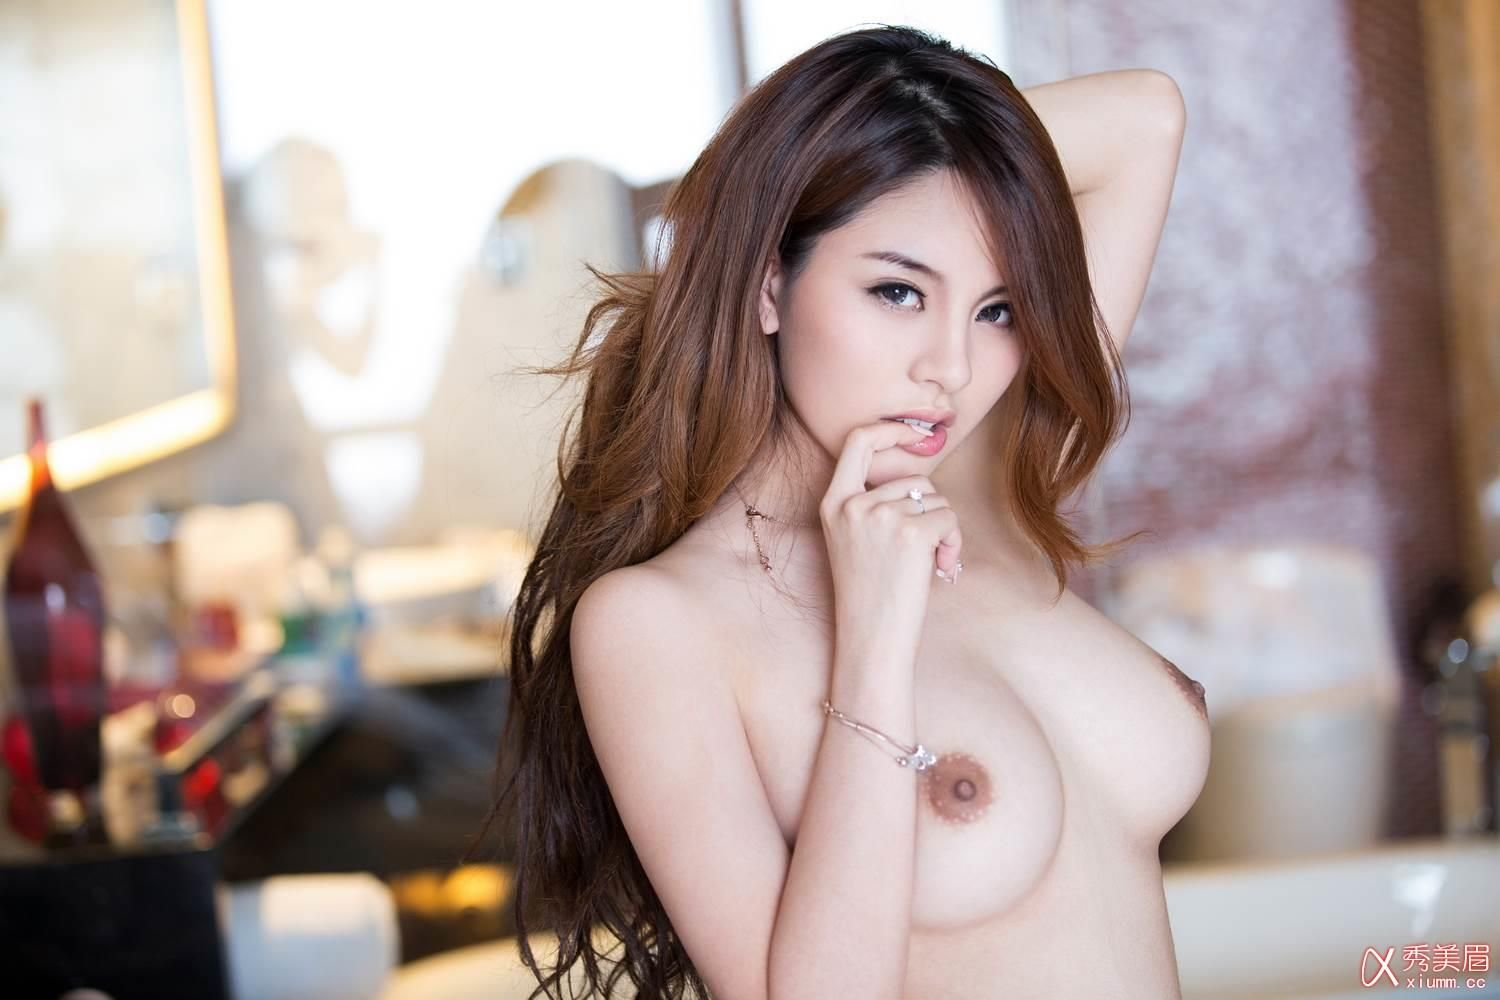 hot-asian-wife-nude-pics-mature-tube-guide-sex